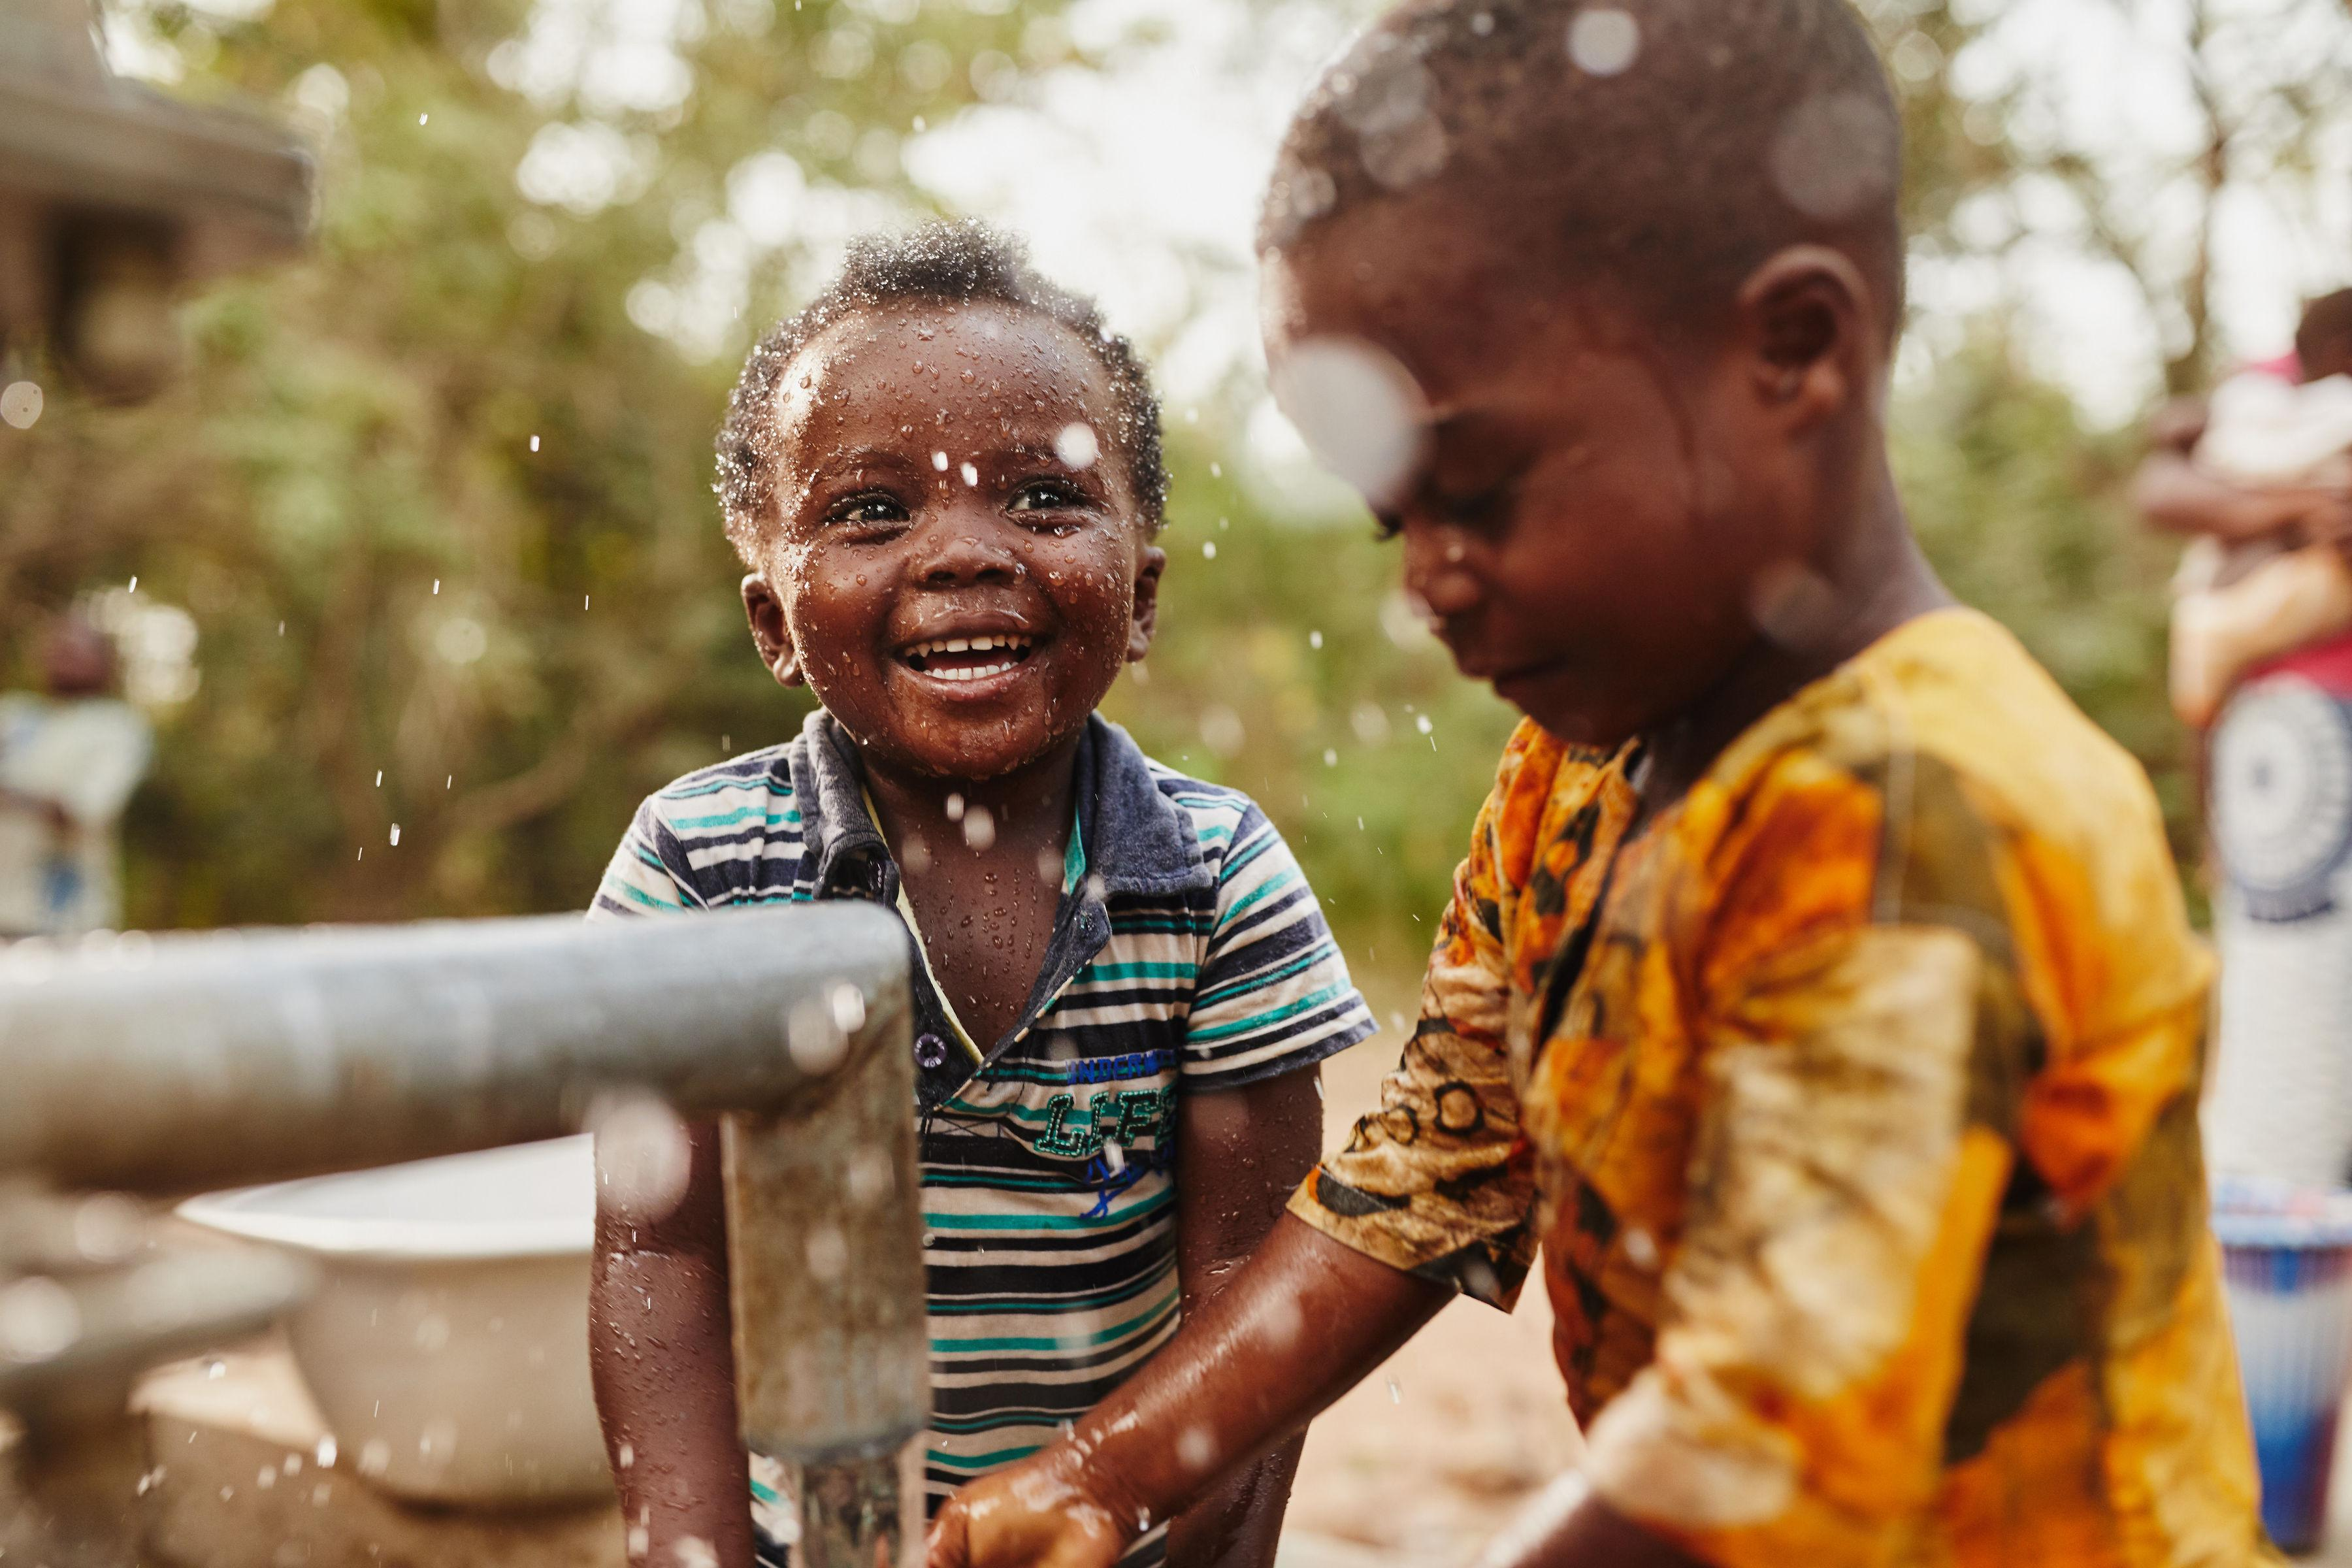 World Vision Appoints BBH Singapore as Global Agency for Child Sponsorship Programme